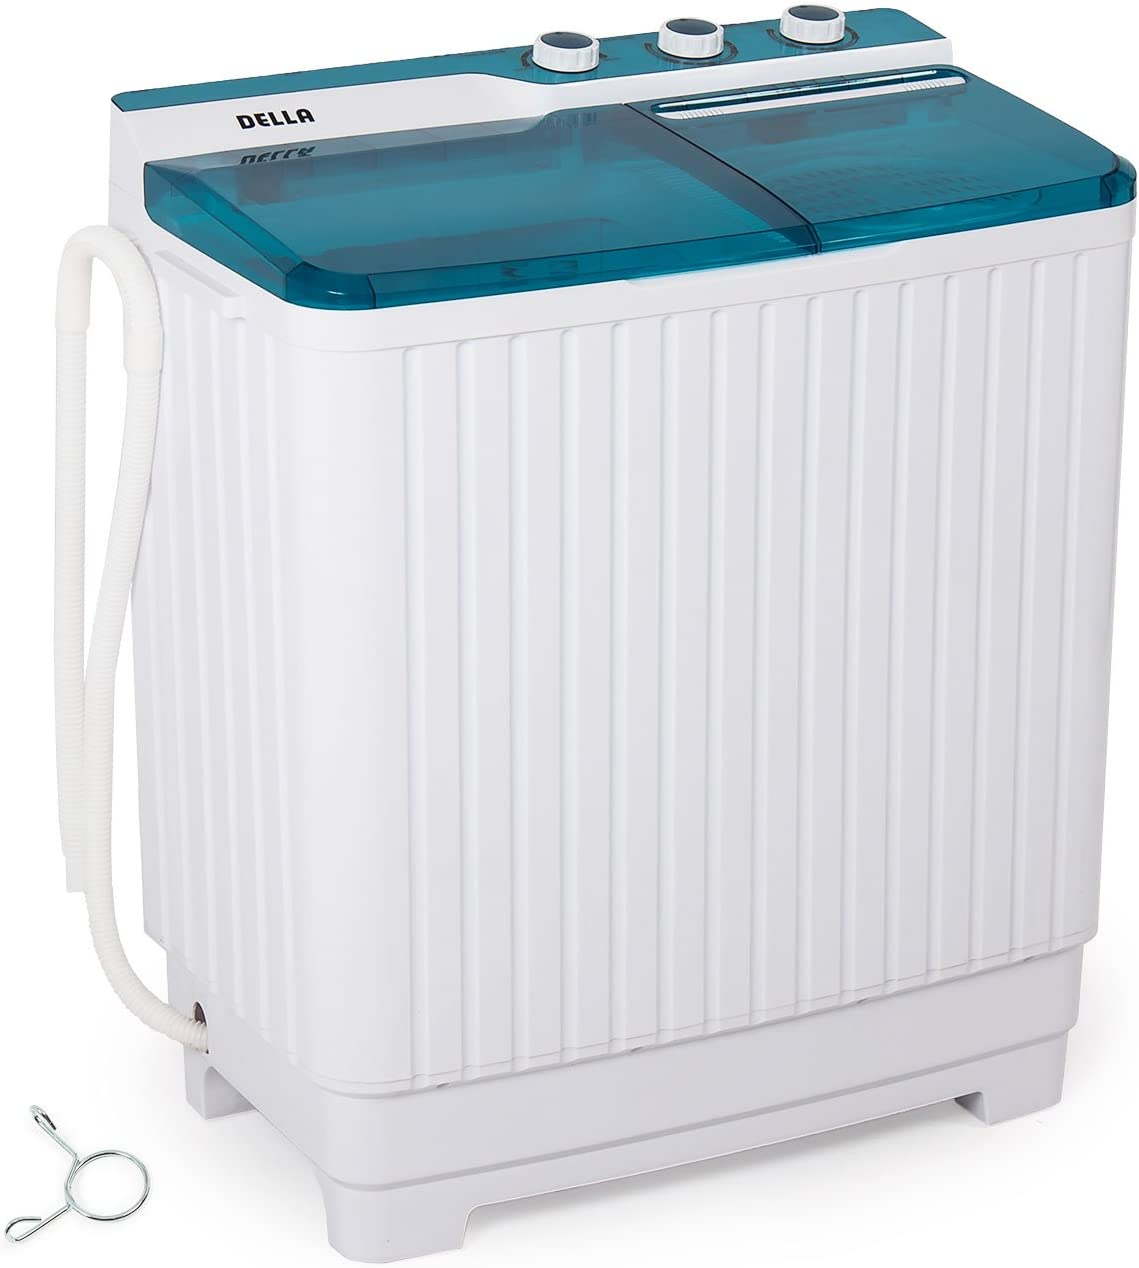 Top 10 Best Portable Washing Machines Reviews in 2020 7